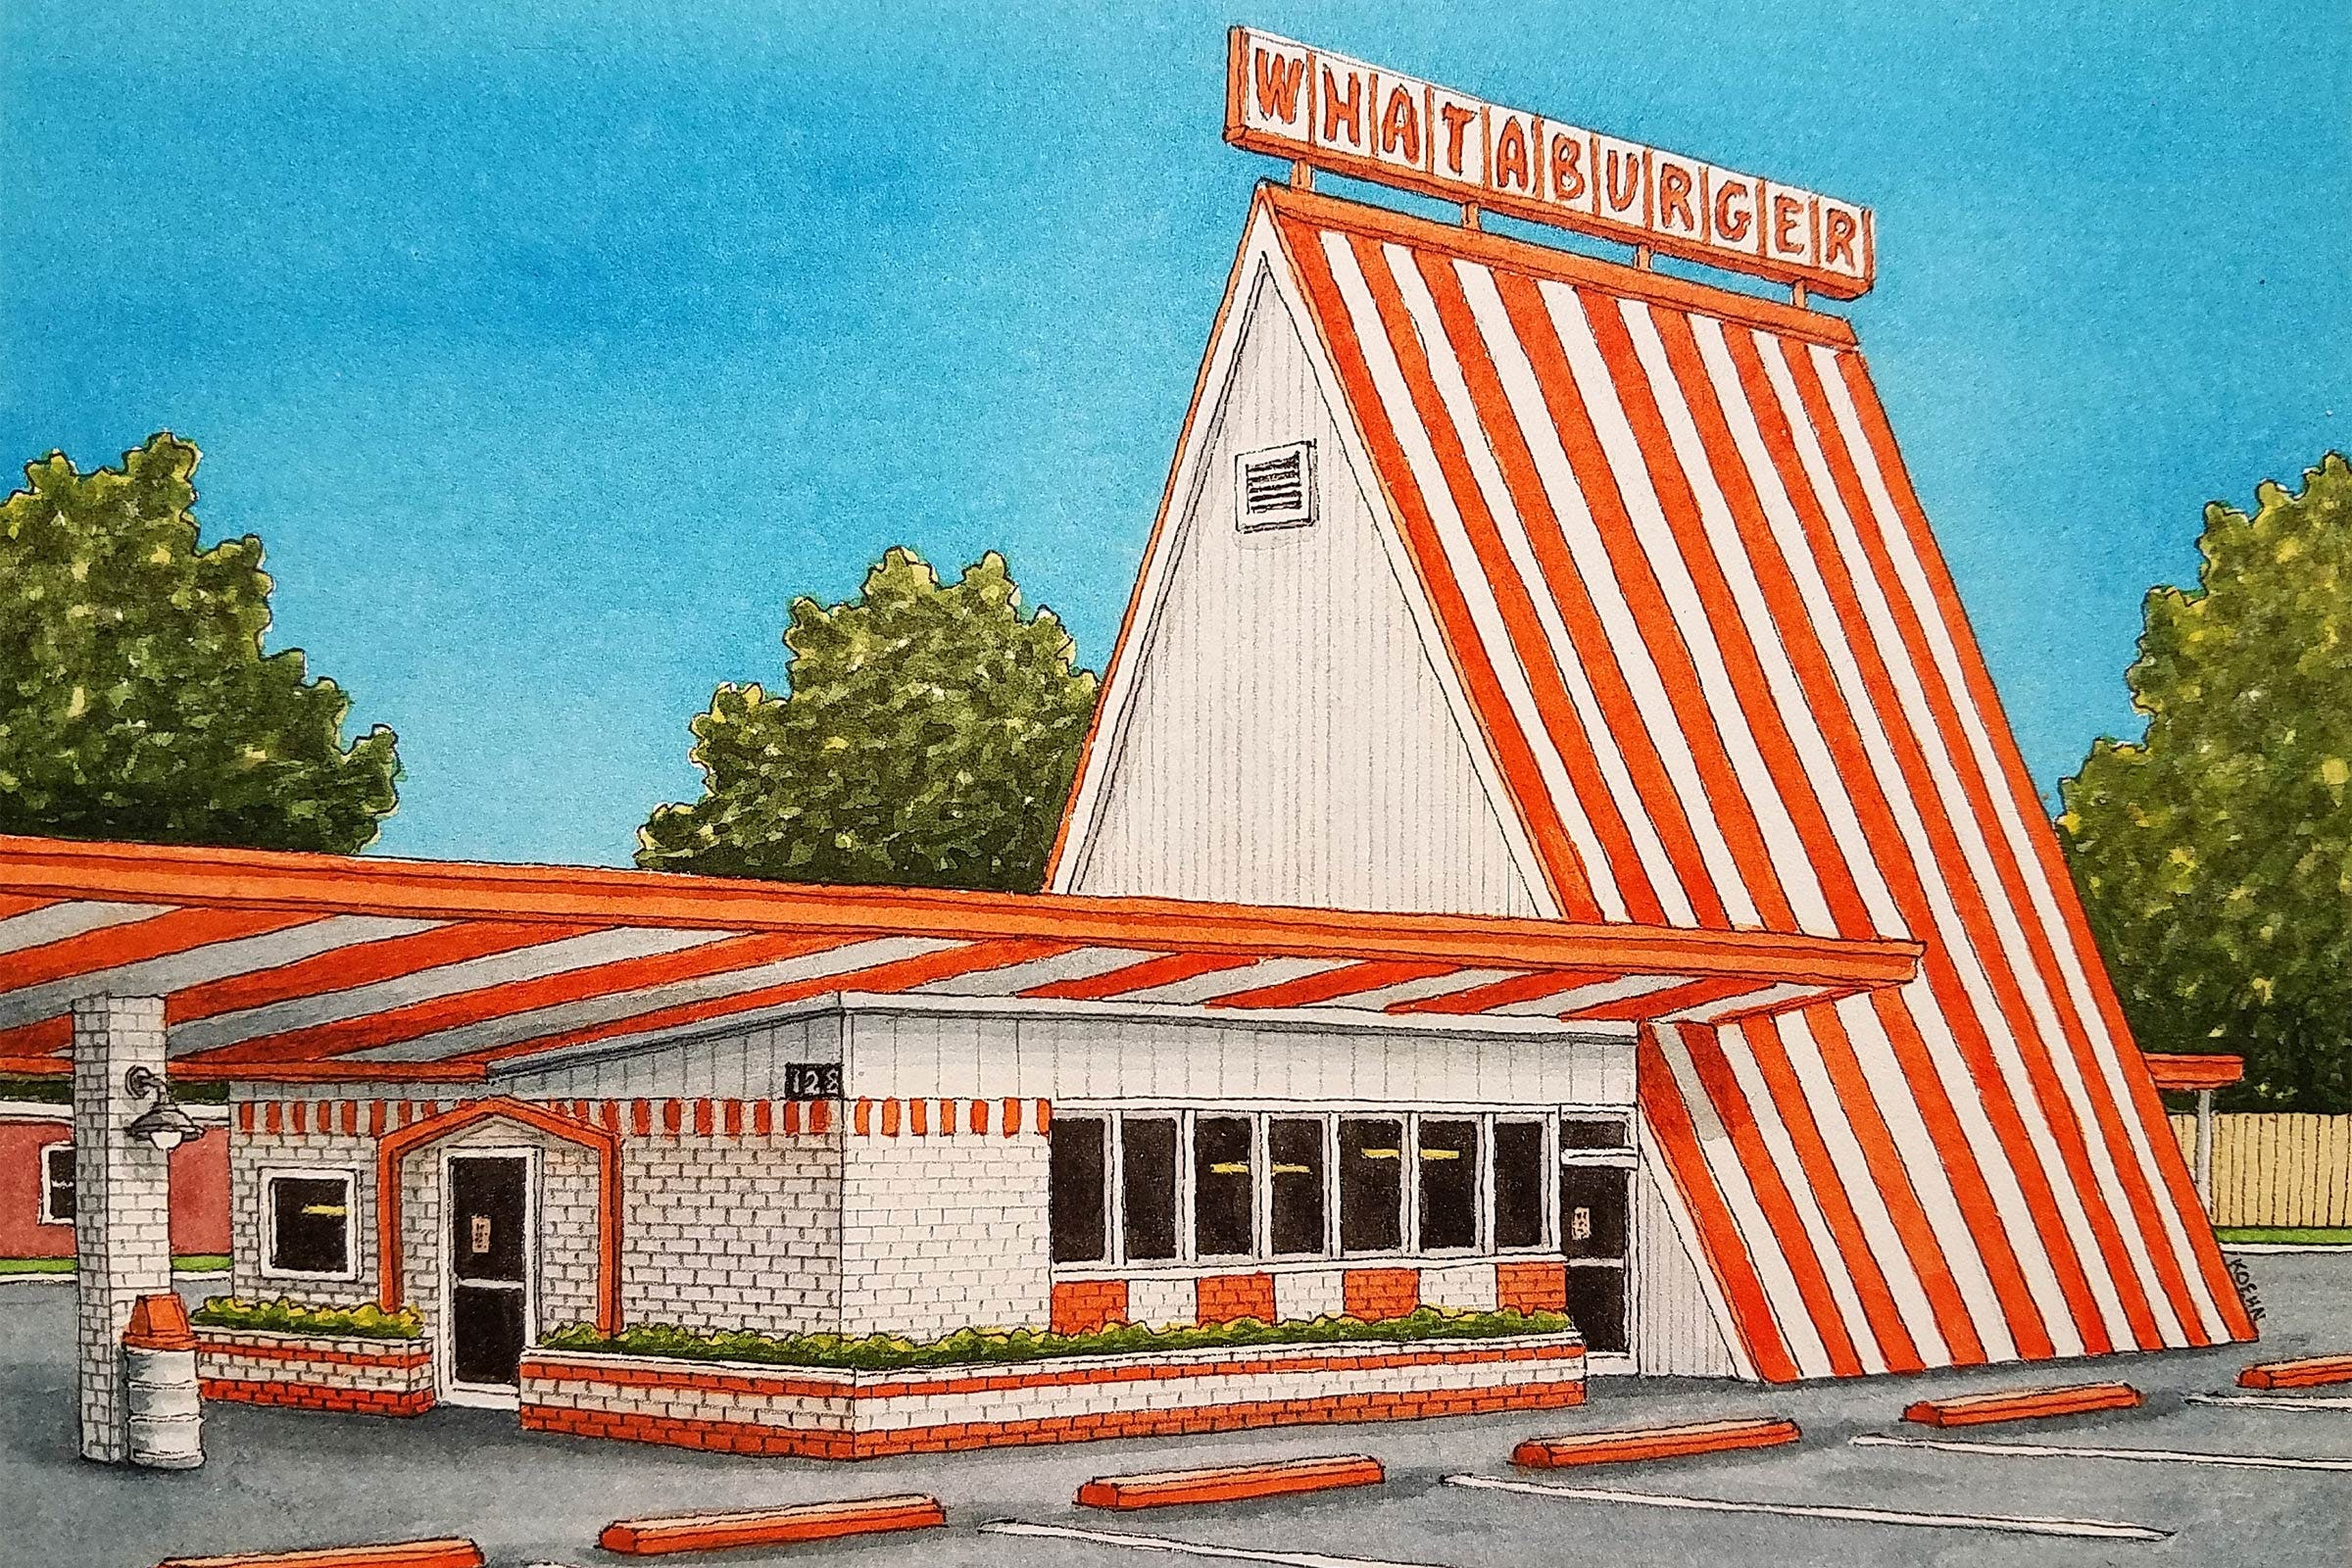 artist-jim-koehn-whataburger-mesquite-texas-watercolor